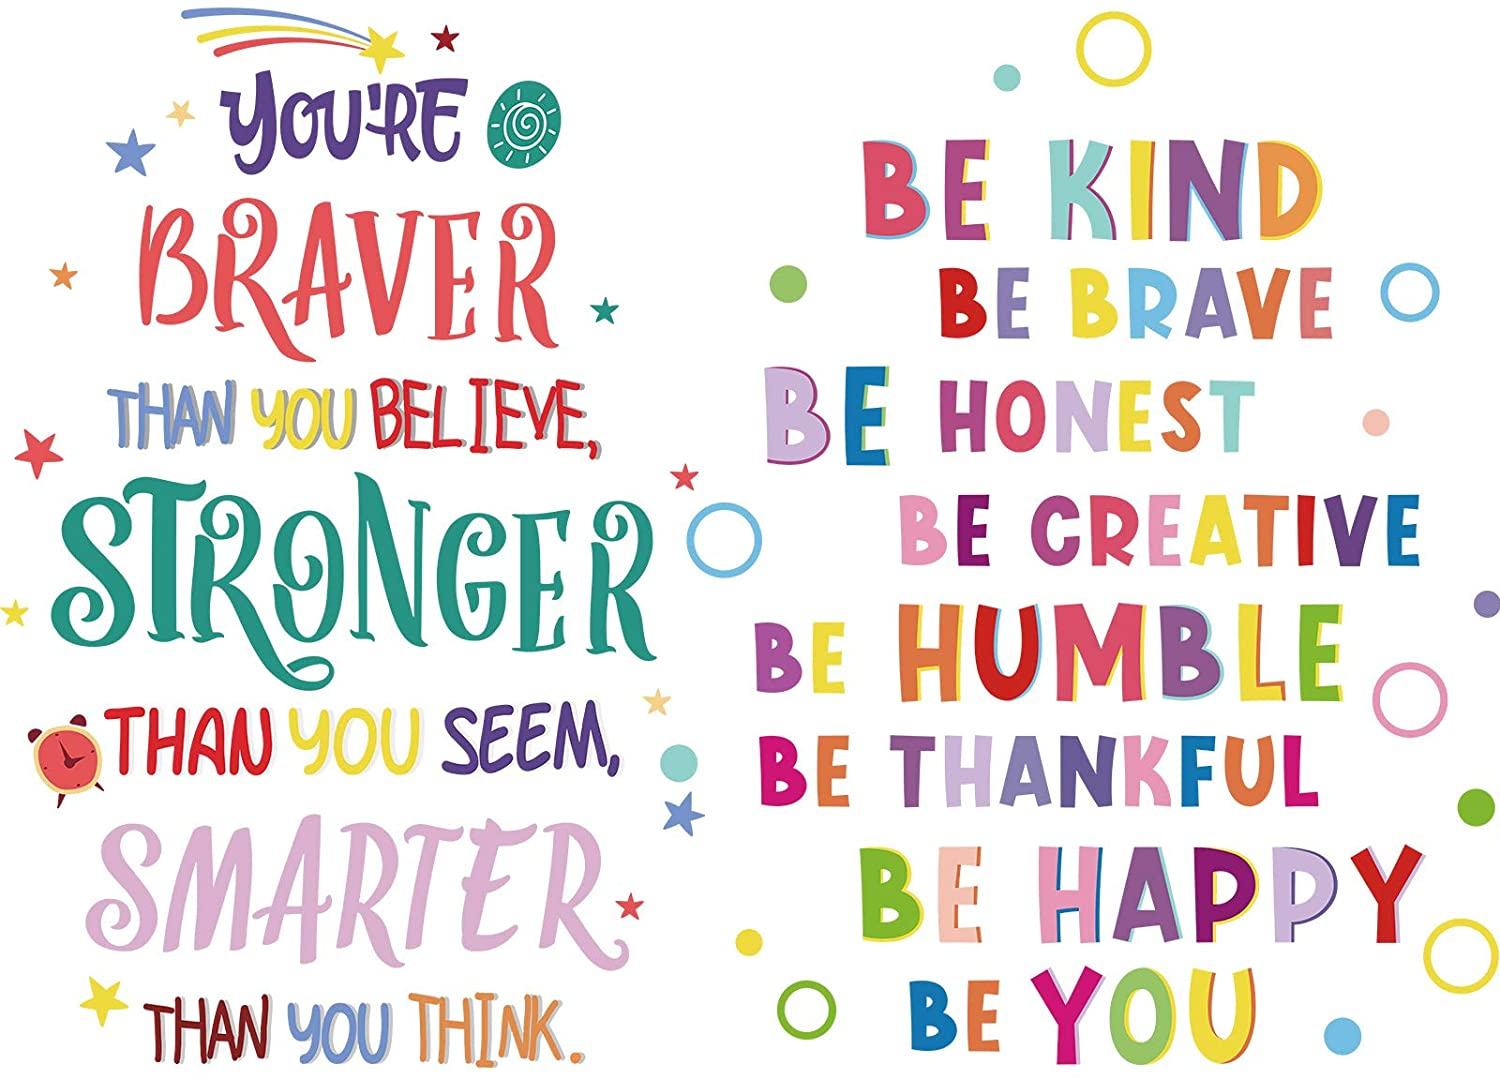 6 Pieces Colorful Inspirational Wall Decal Motivational Phrases Wall Sticker You're Braver than You Believe Decals for Classroom Nursery Kids Home Decoration